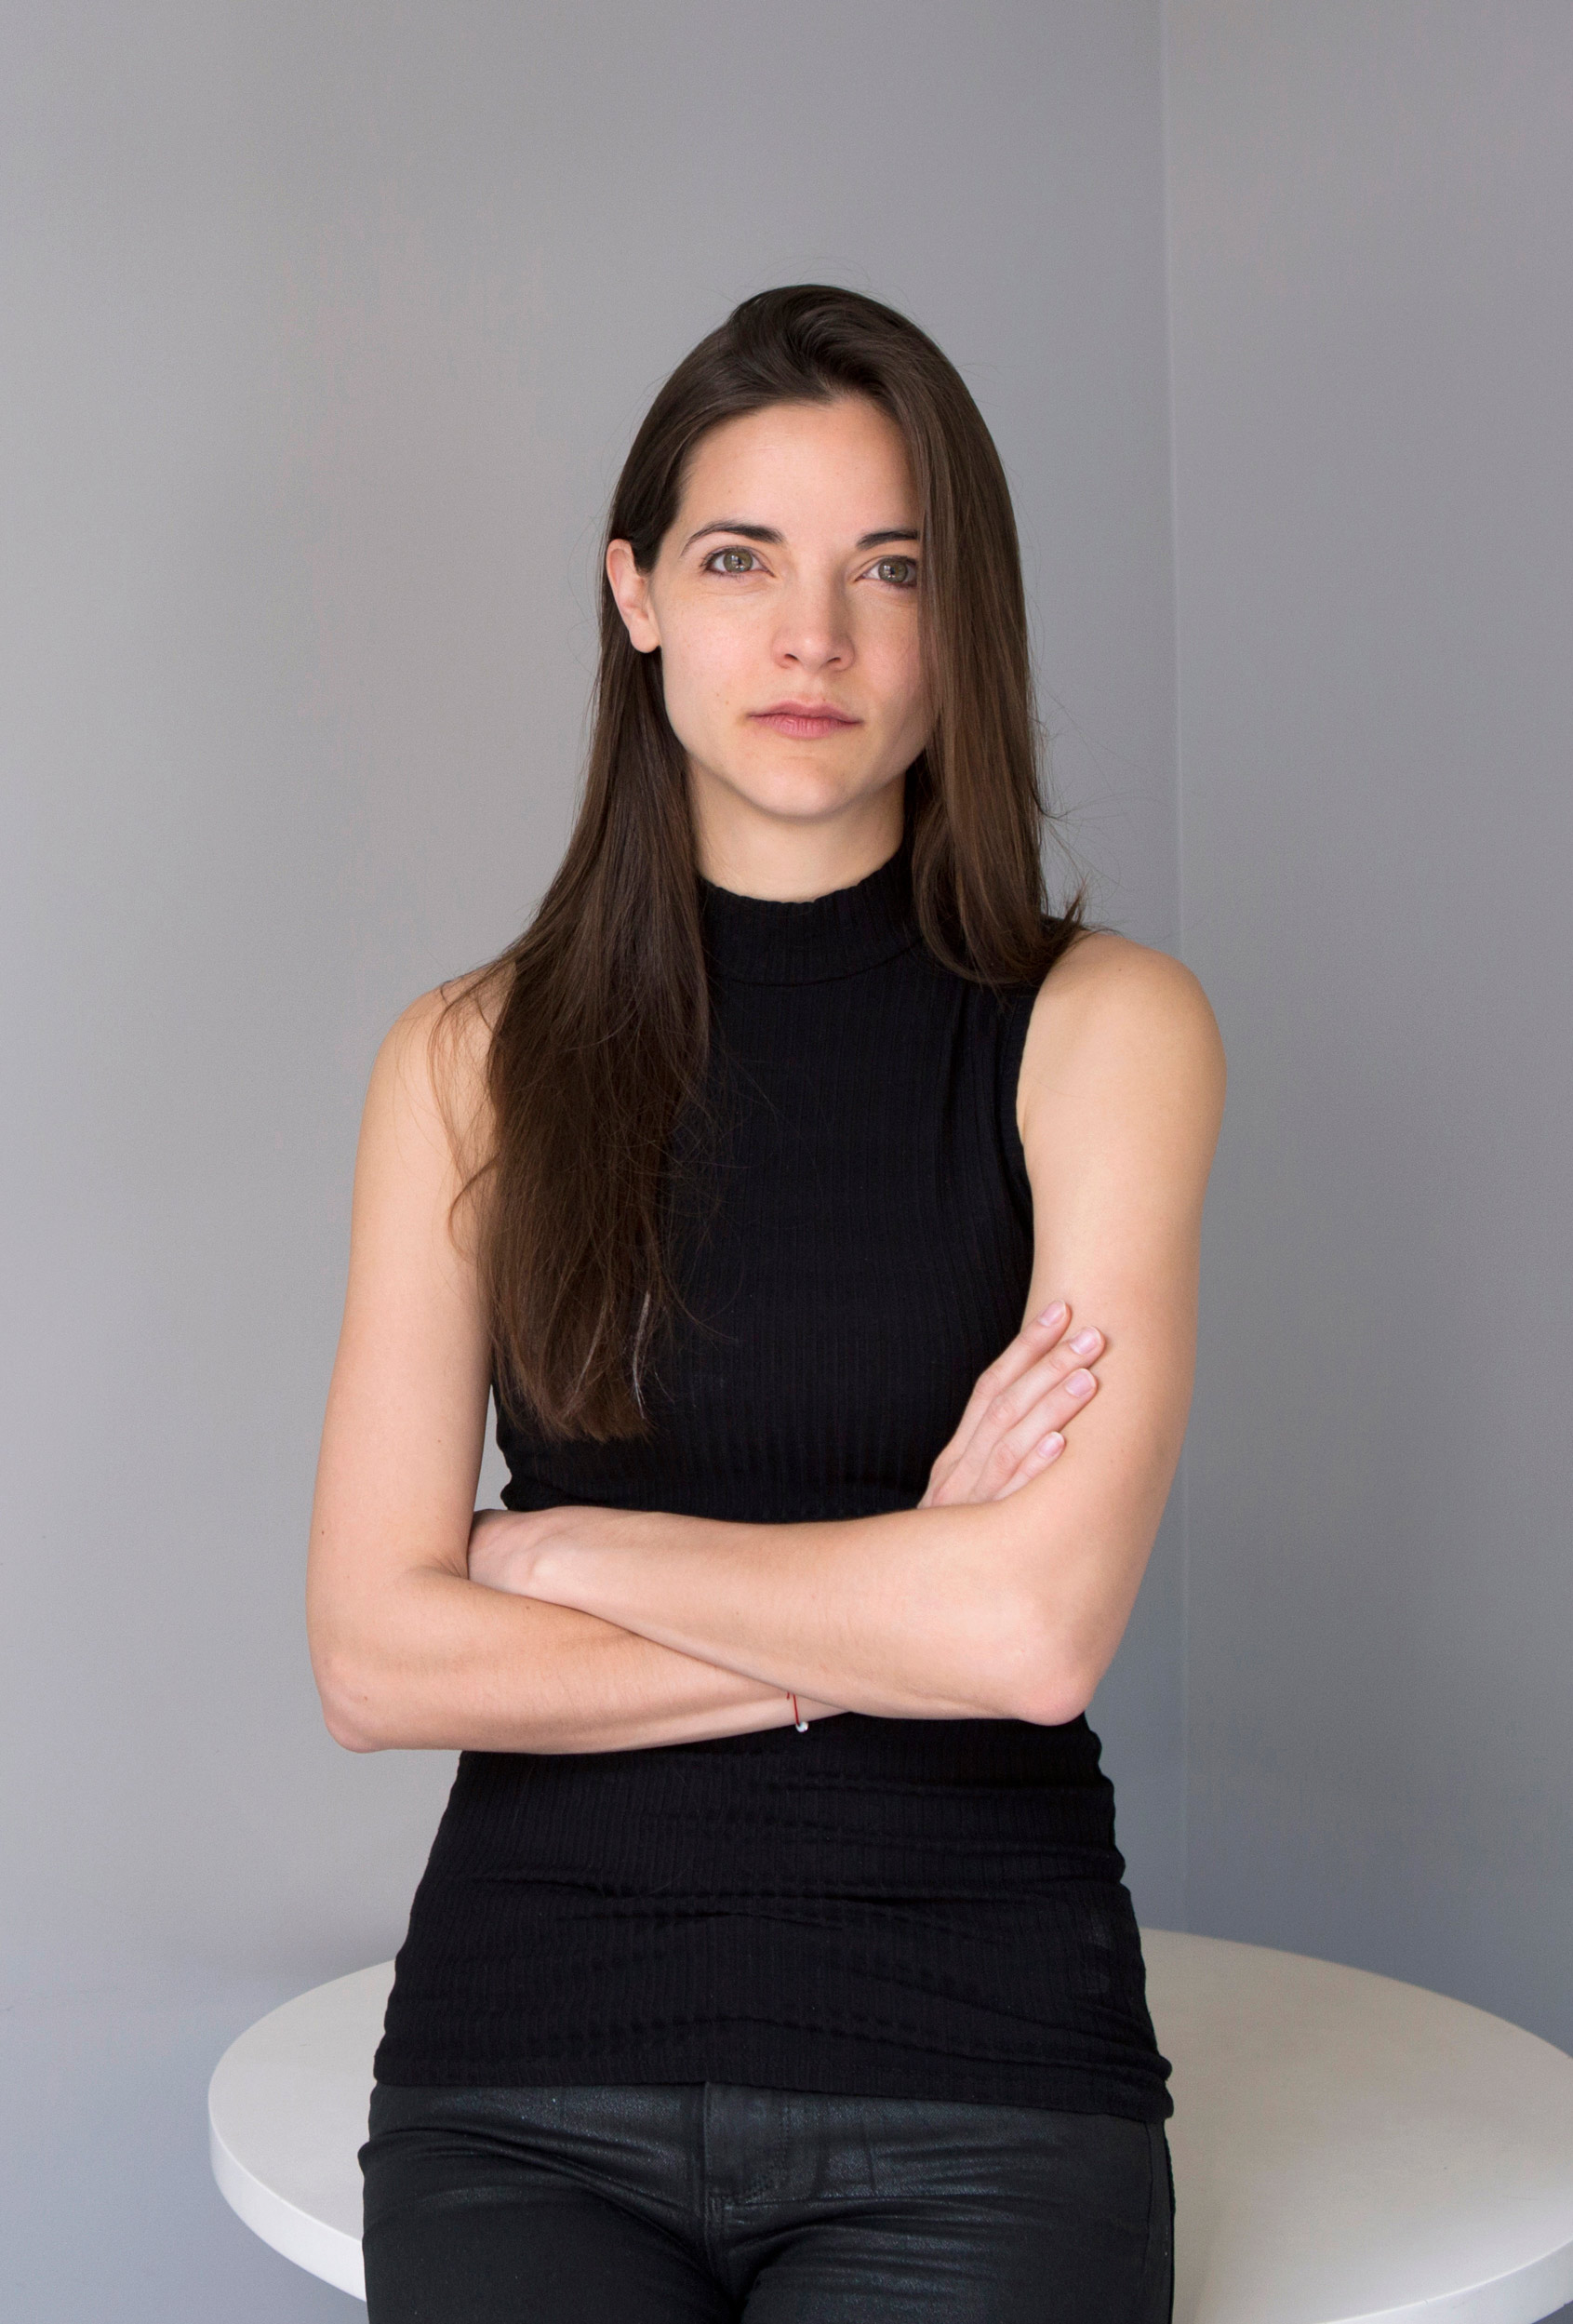 The Muse CEO and co-founder Kathryn Minshew